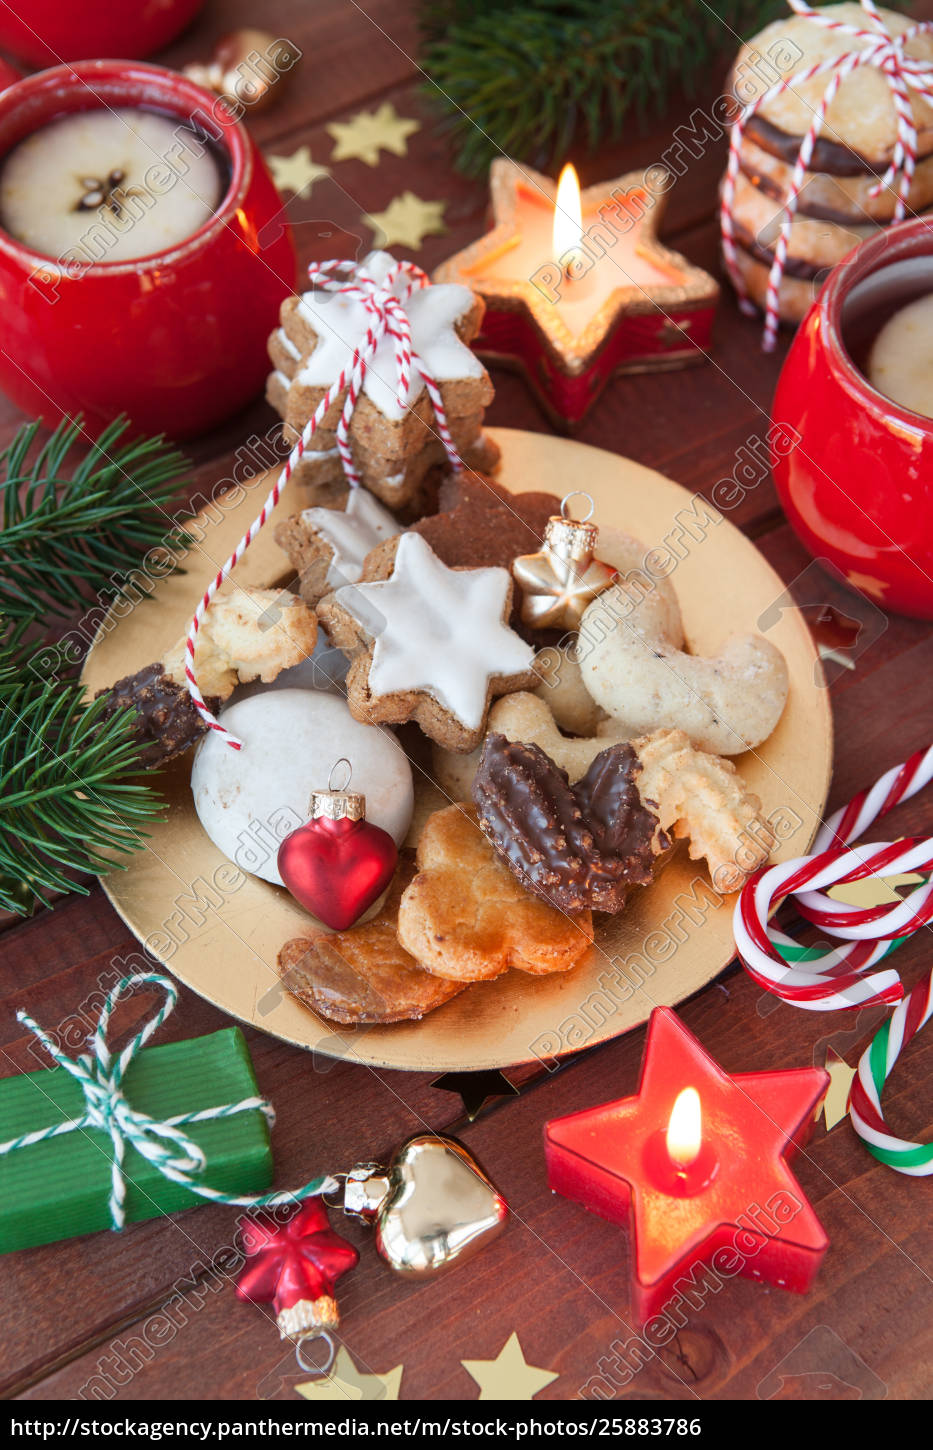 Stock Image 25883786 Variety Of Christmas Cookies